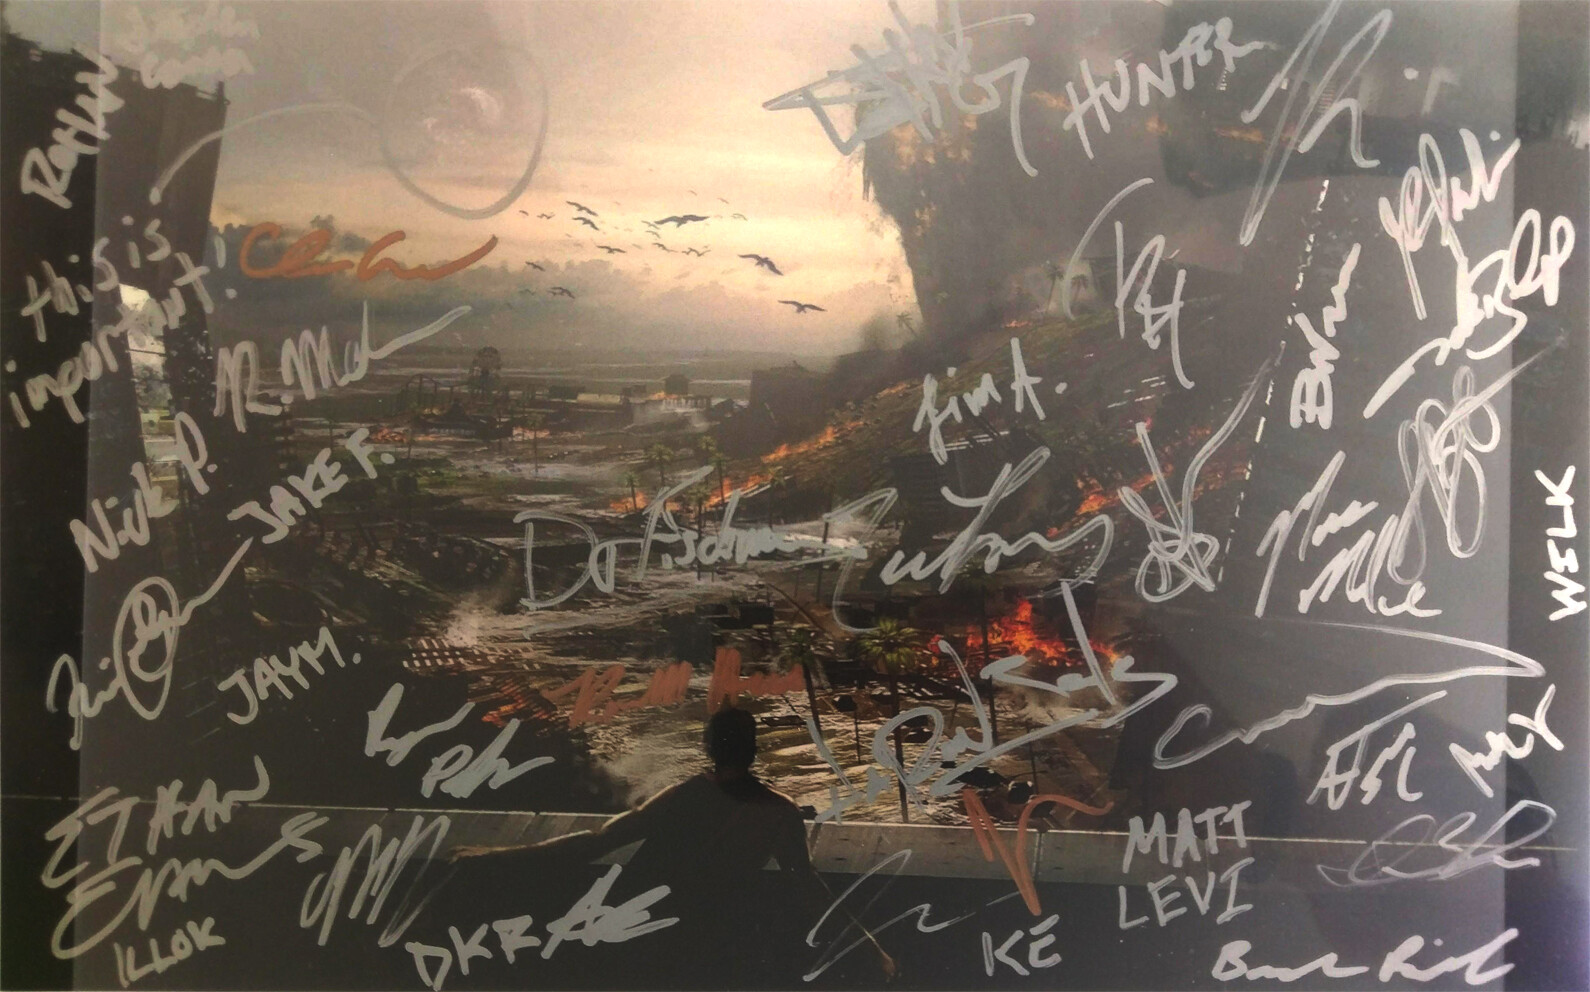 This is a fan's photo that won a contest for Lawbreakers and recieved a print of my concept, signed by several employees at Boss Key Productions! Pretty cool!